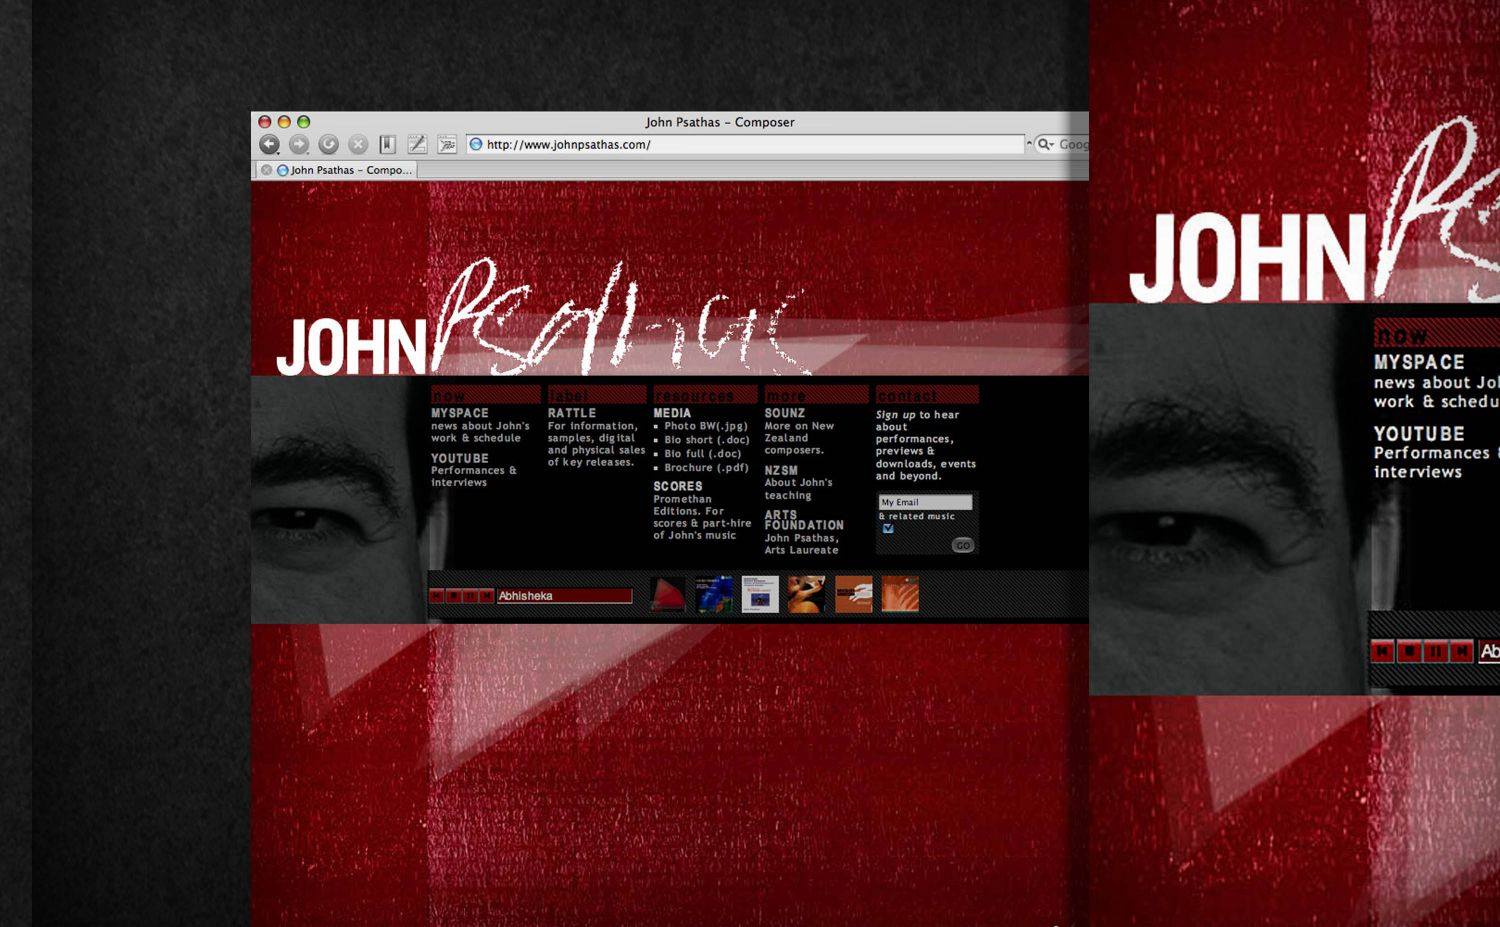 John Psathas - Composer - Single Page Site